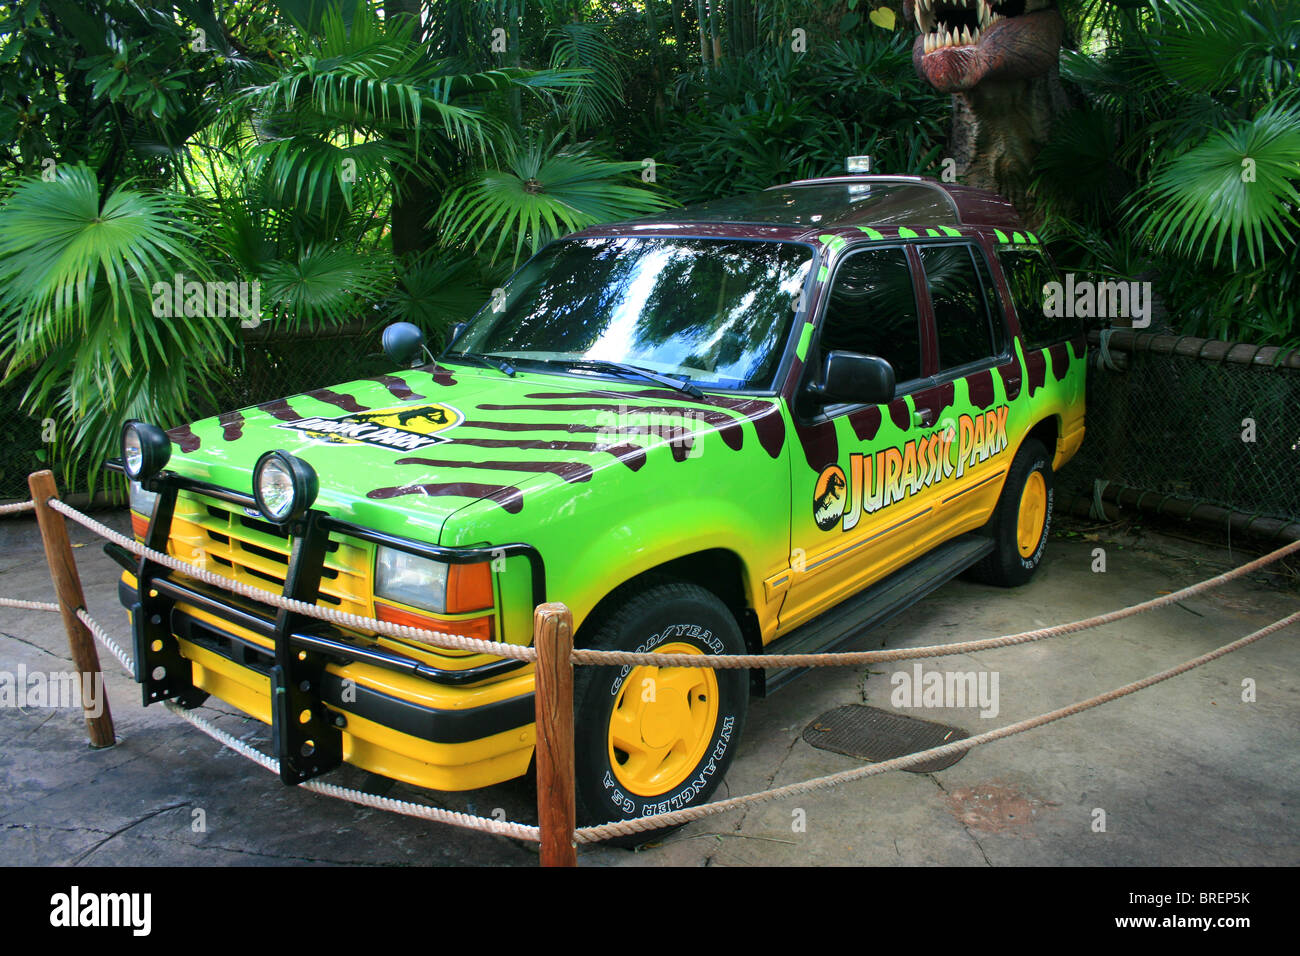 Jurassic park jeep cherokee stock photo royalty free image 31672191 alamy